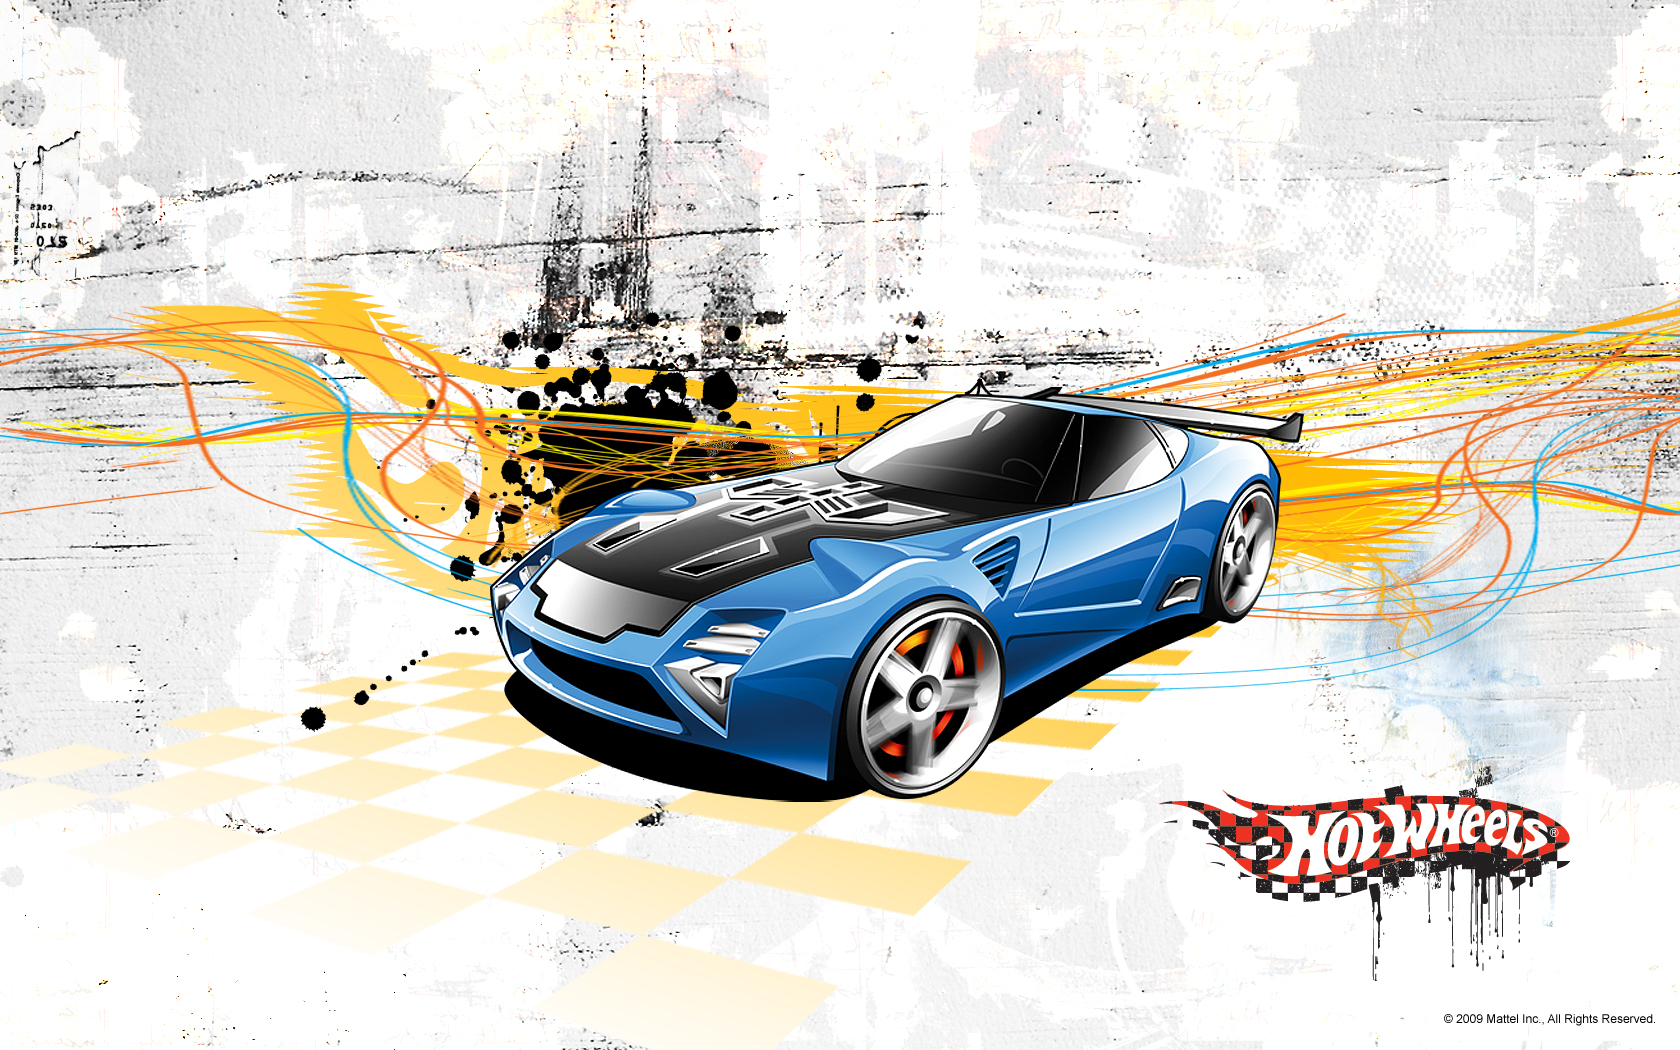 Hot Wheels Wallpapers Pc 389975 Hd Wallpaper